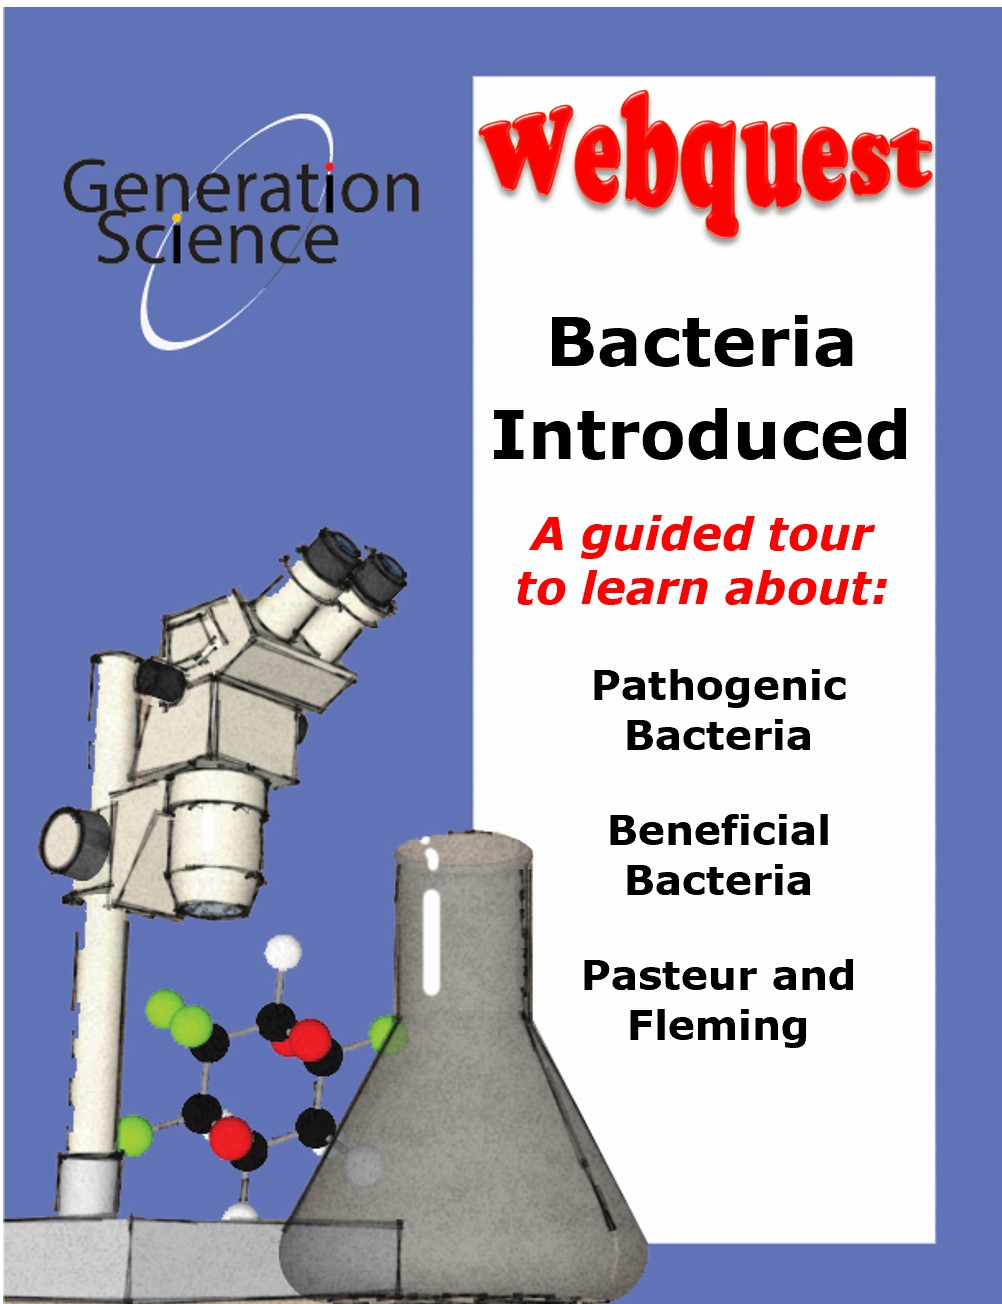 bacteria webquest cover